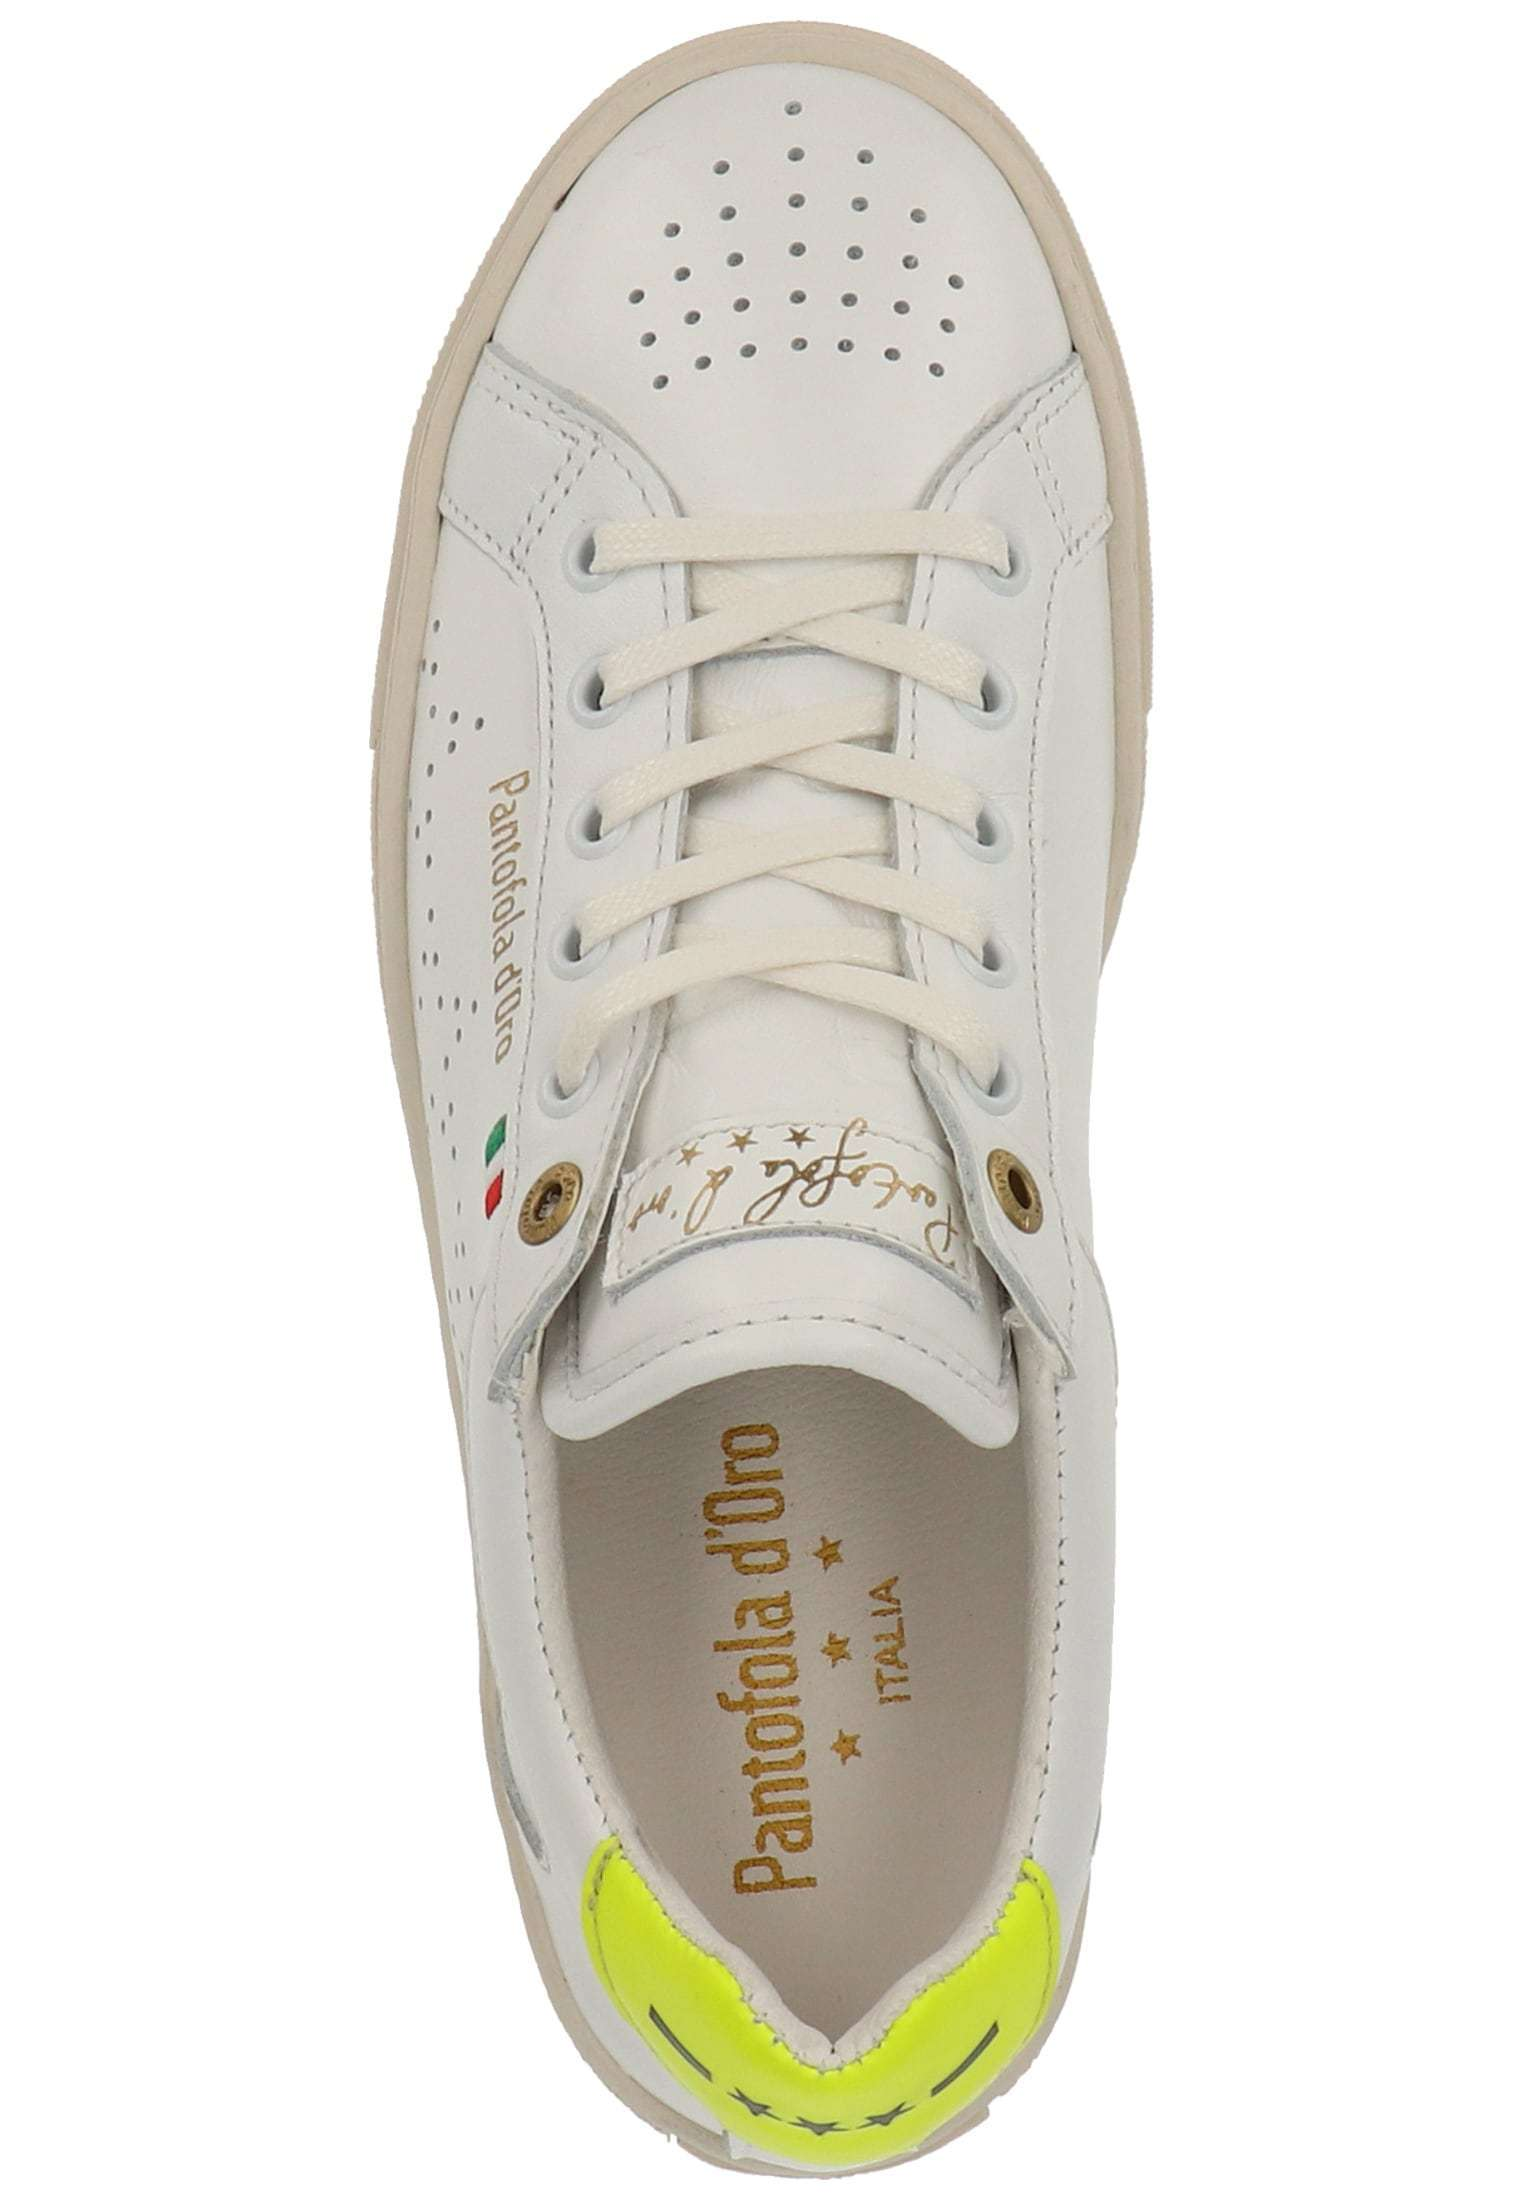 shop pantofola d'oro shoes